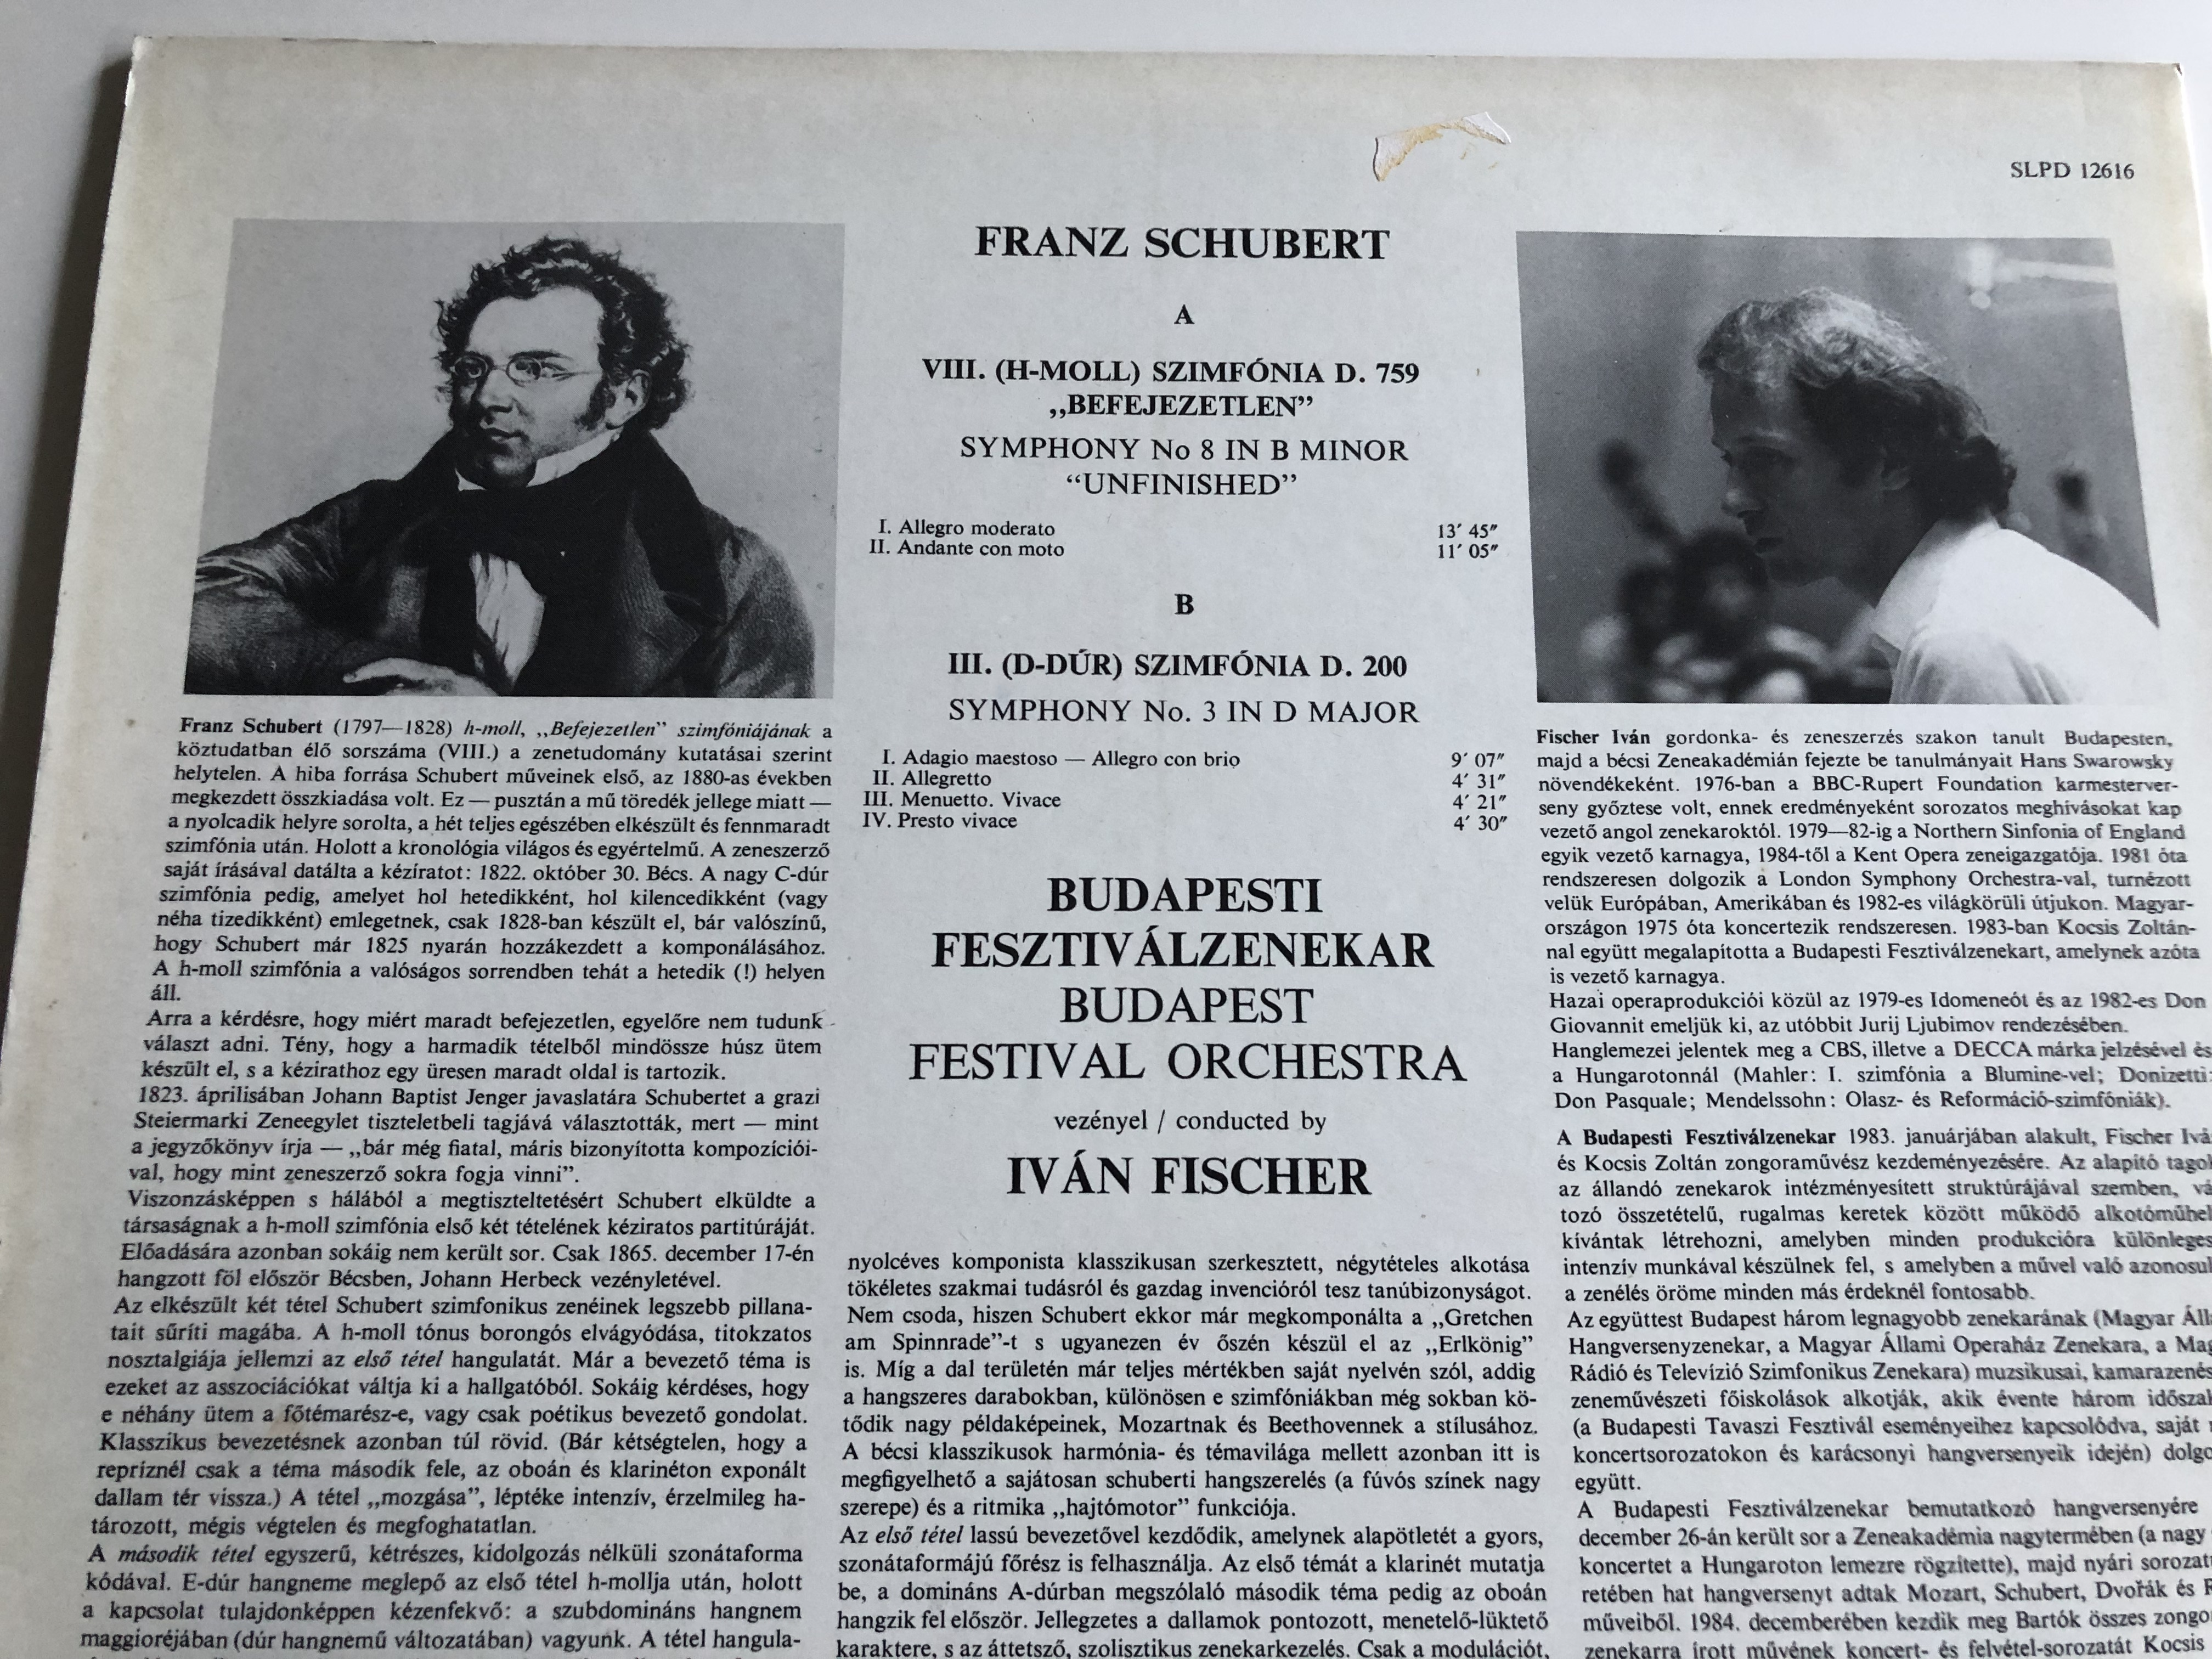 schubert-symphony-no.-8-in-b-minor-unfinished-symphony-no.-3-in-d-major-budapest-festival-orchestra-ivan-fischer-hungaroton-lp-digital-stereo-slpd-12616-3-.jpg